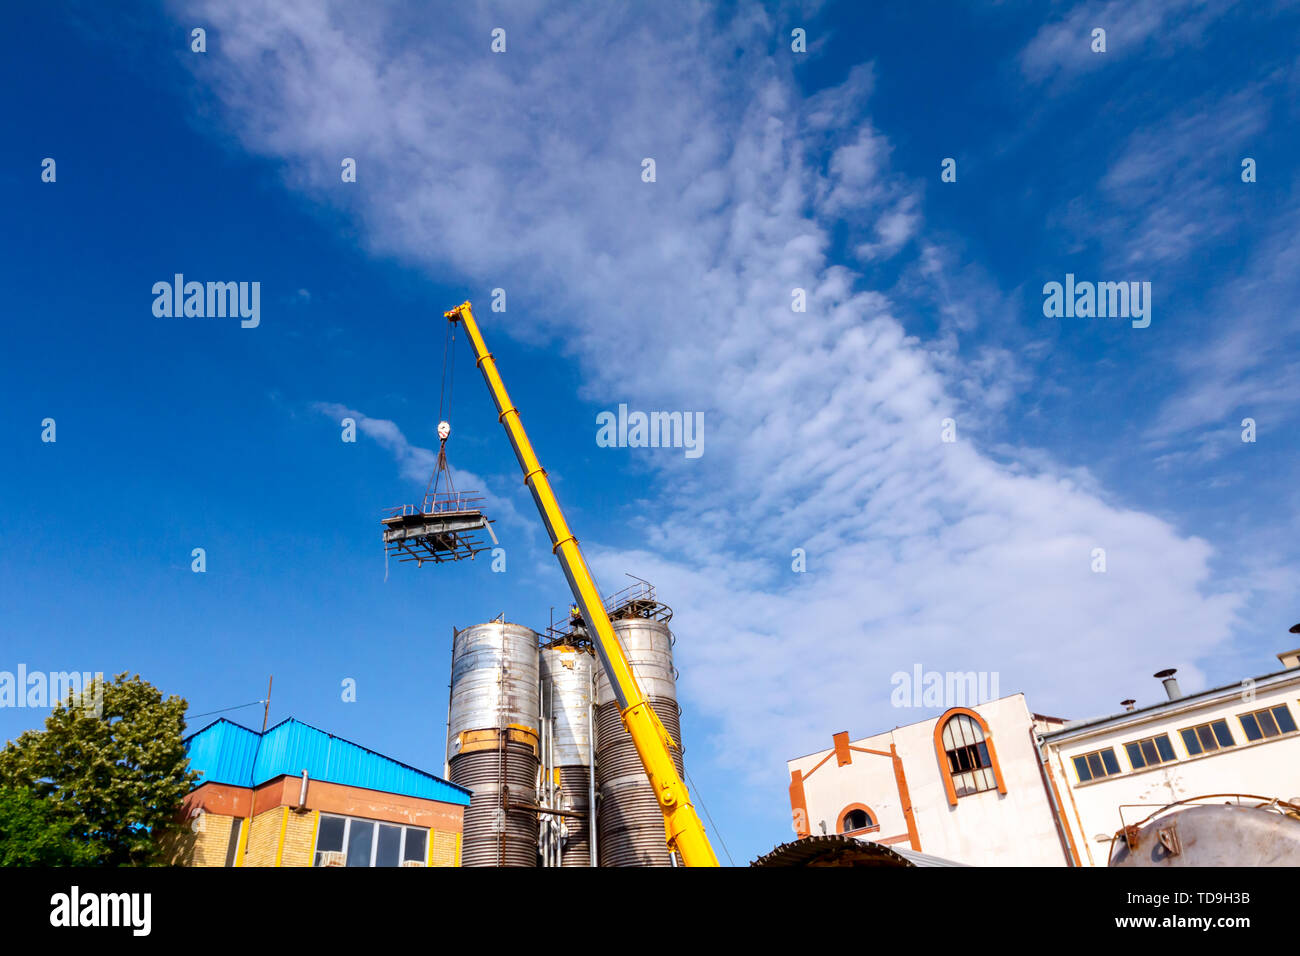 Crane is bringing down part of heavy metal construction in industrial complex. - Stock Image